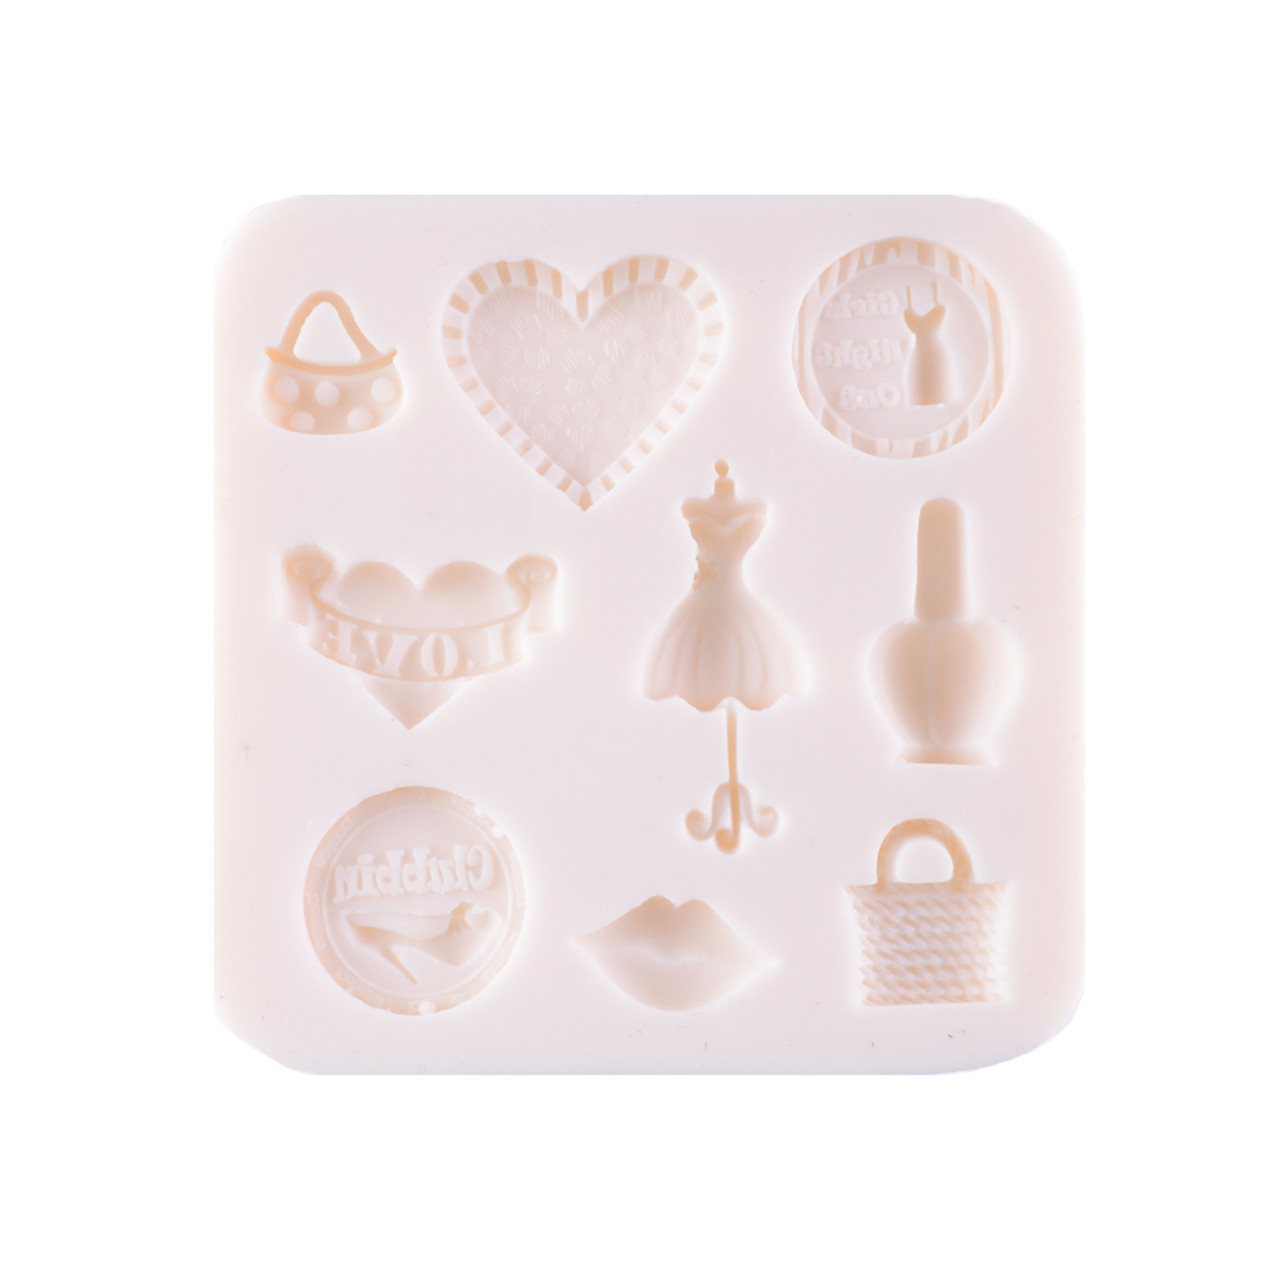 Silicone Mould - Pretty Charms 9 Kinds